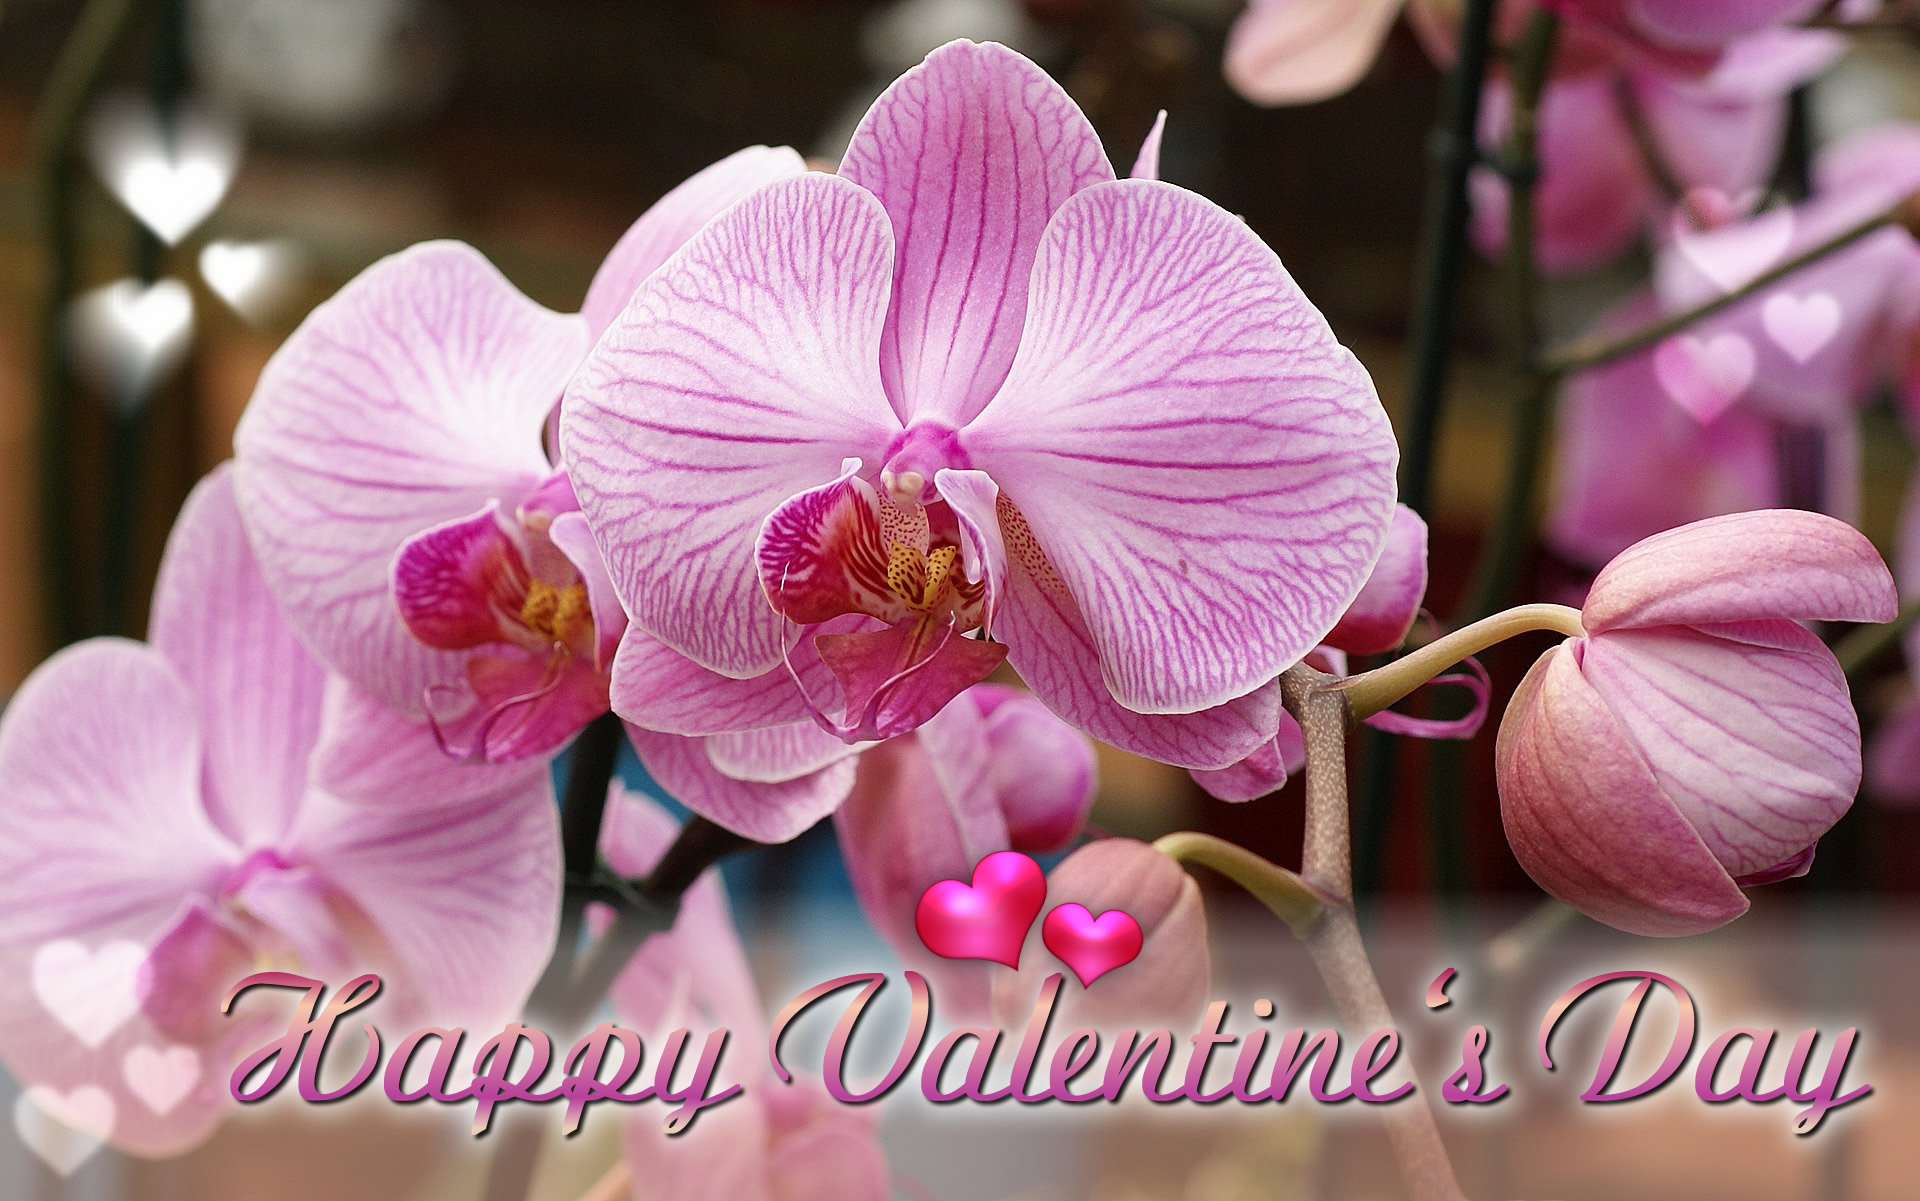 Happy Valentine's Day ecard orchids